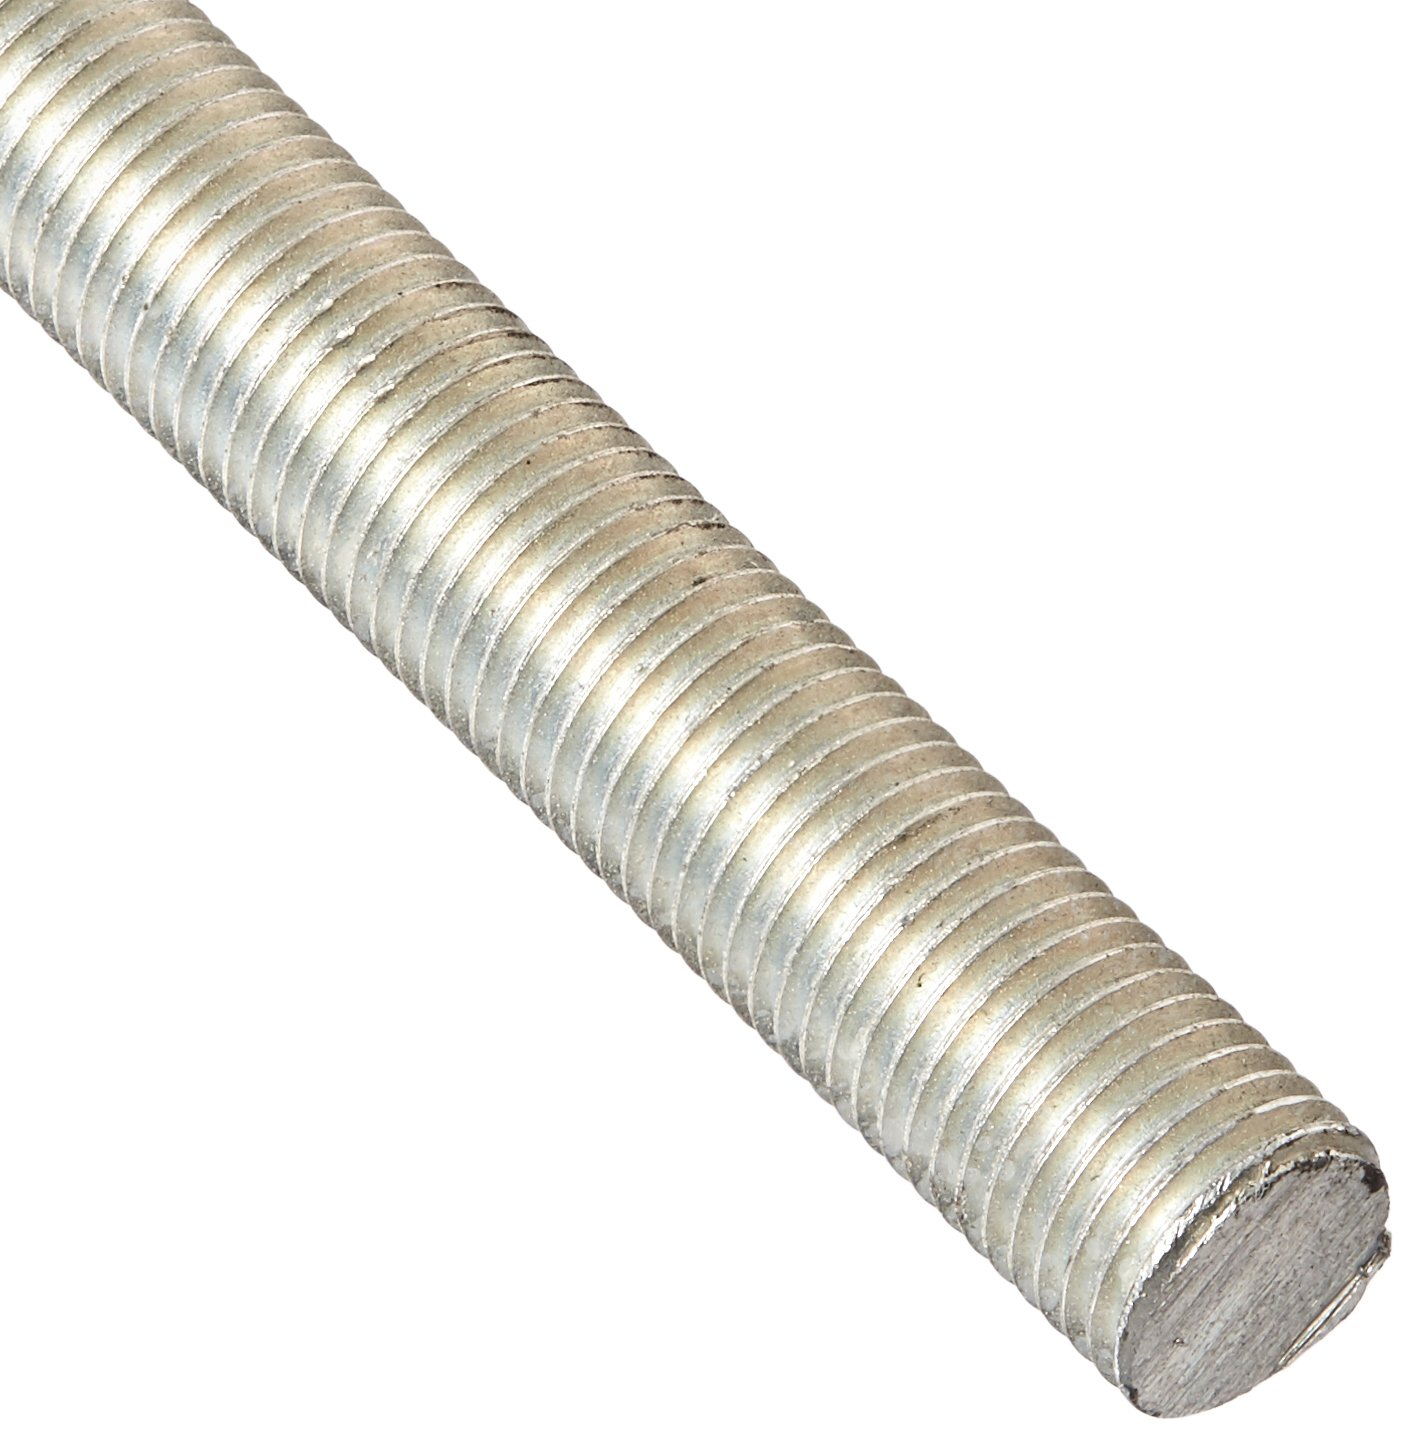 Electro Zinc Plated National Fine 7//16-20 Thread 24 Length Low Carbon Steel Precision Brand 039-37280 Threaded Rod